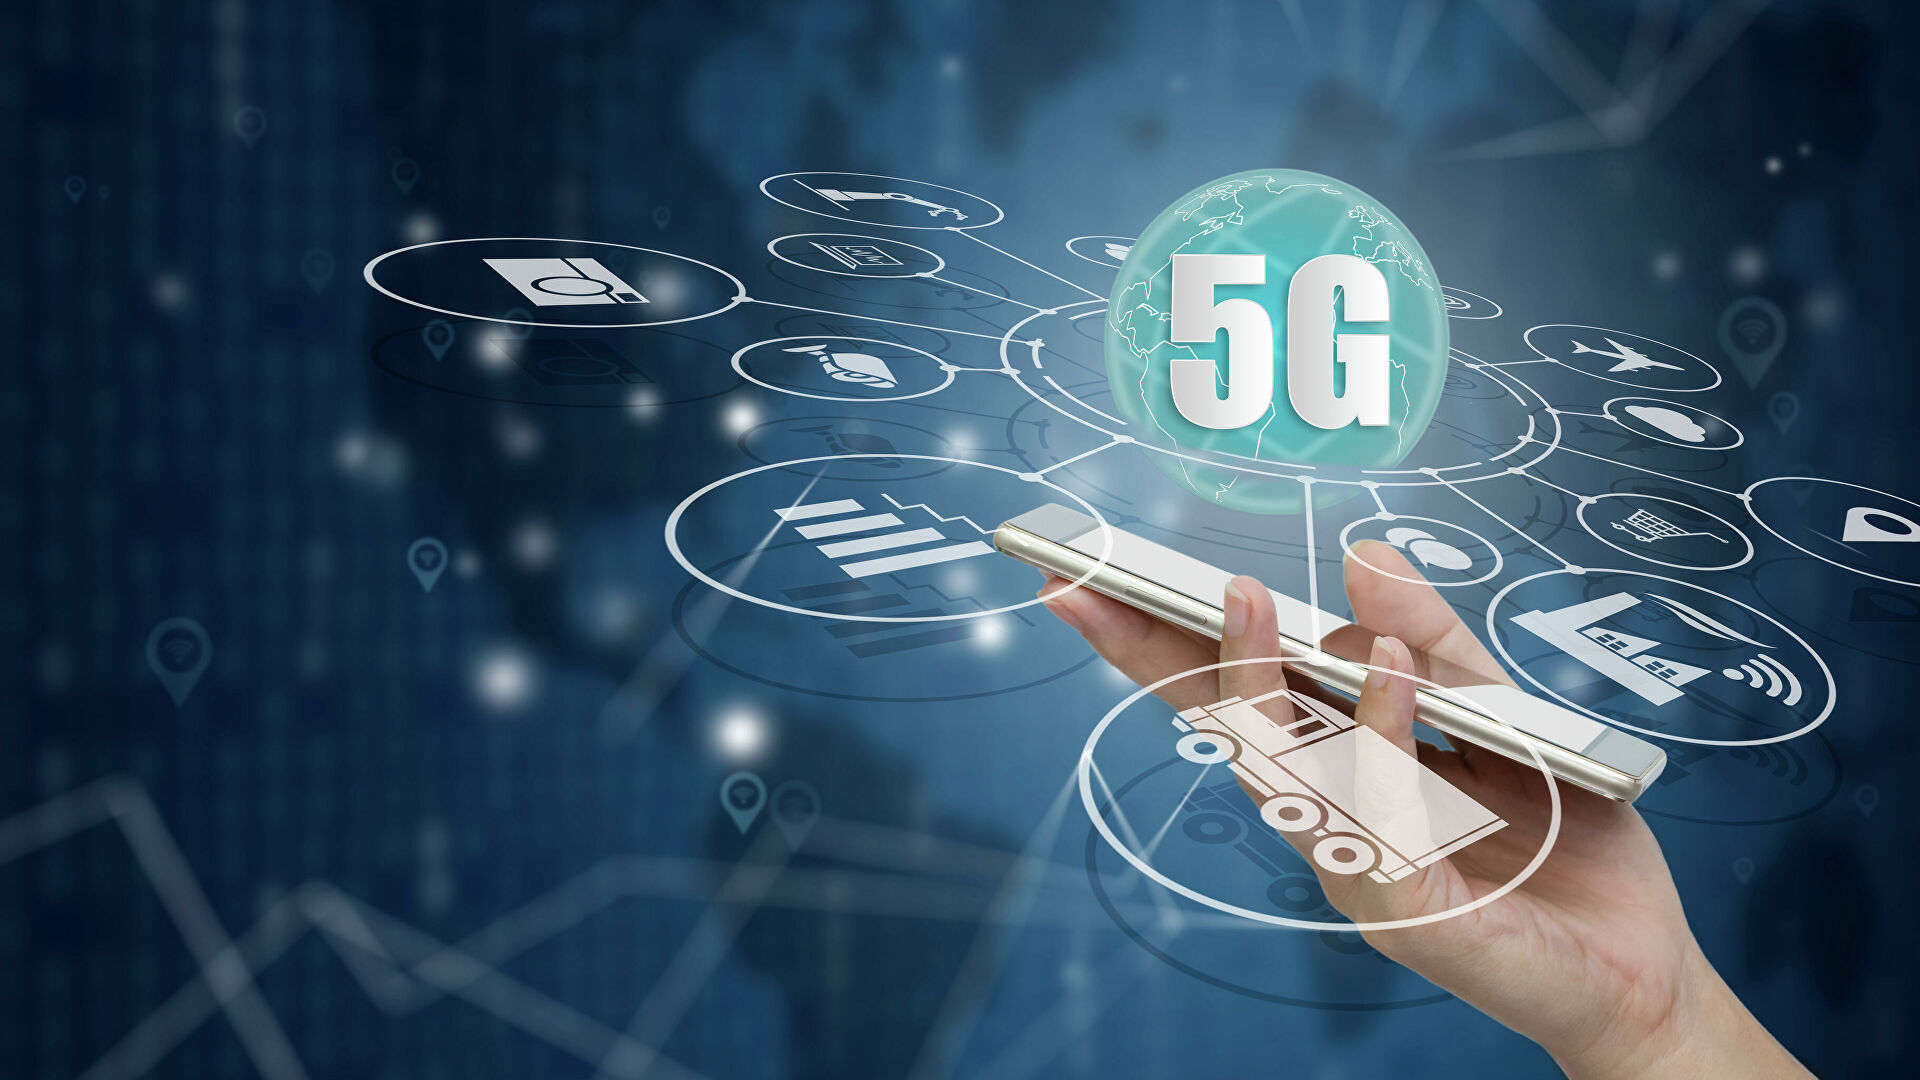 Eurasia 5G trainings 2020